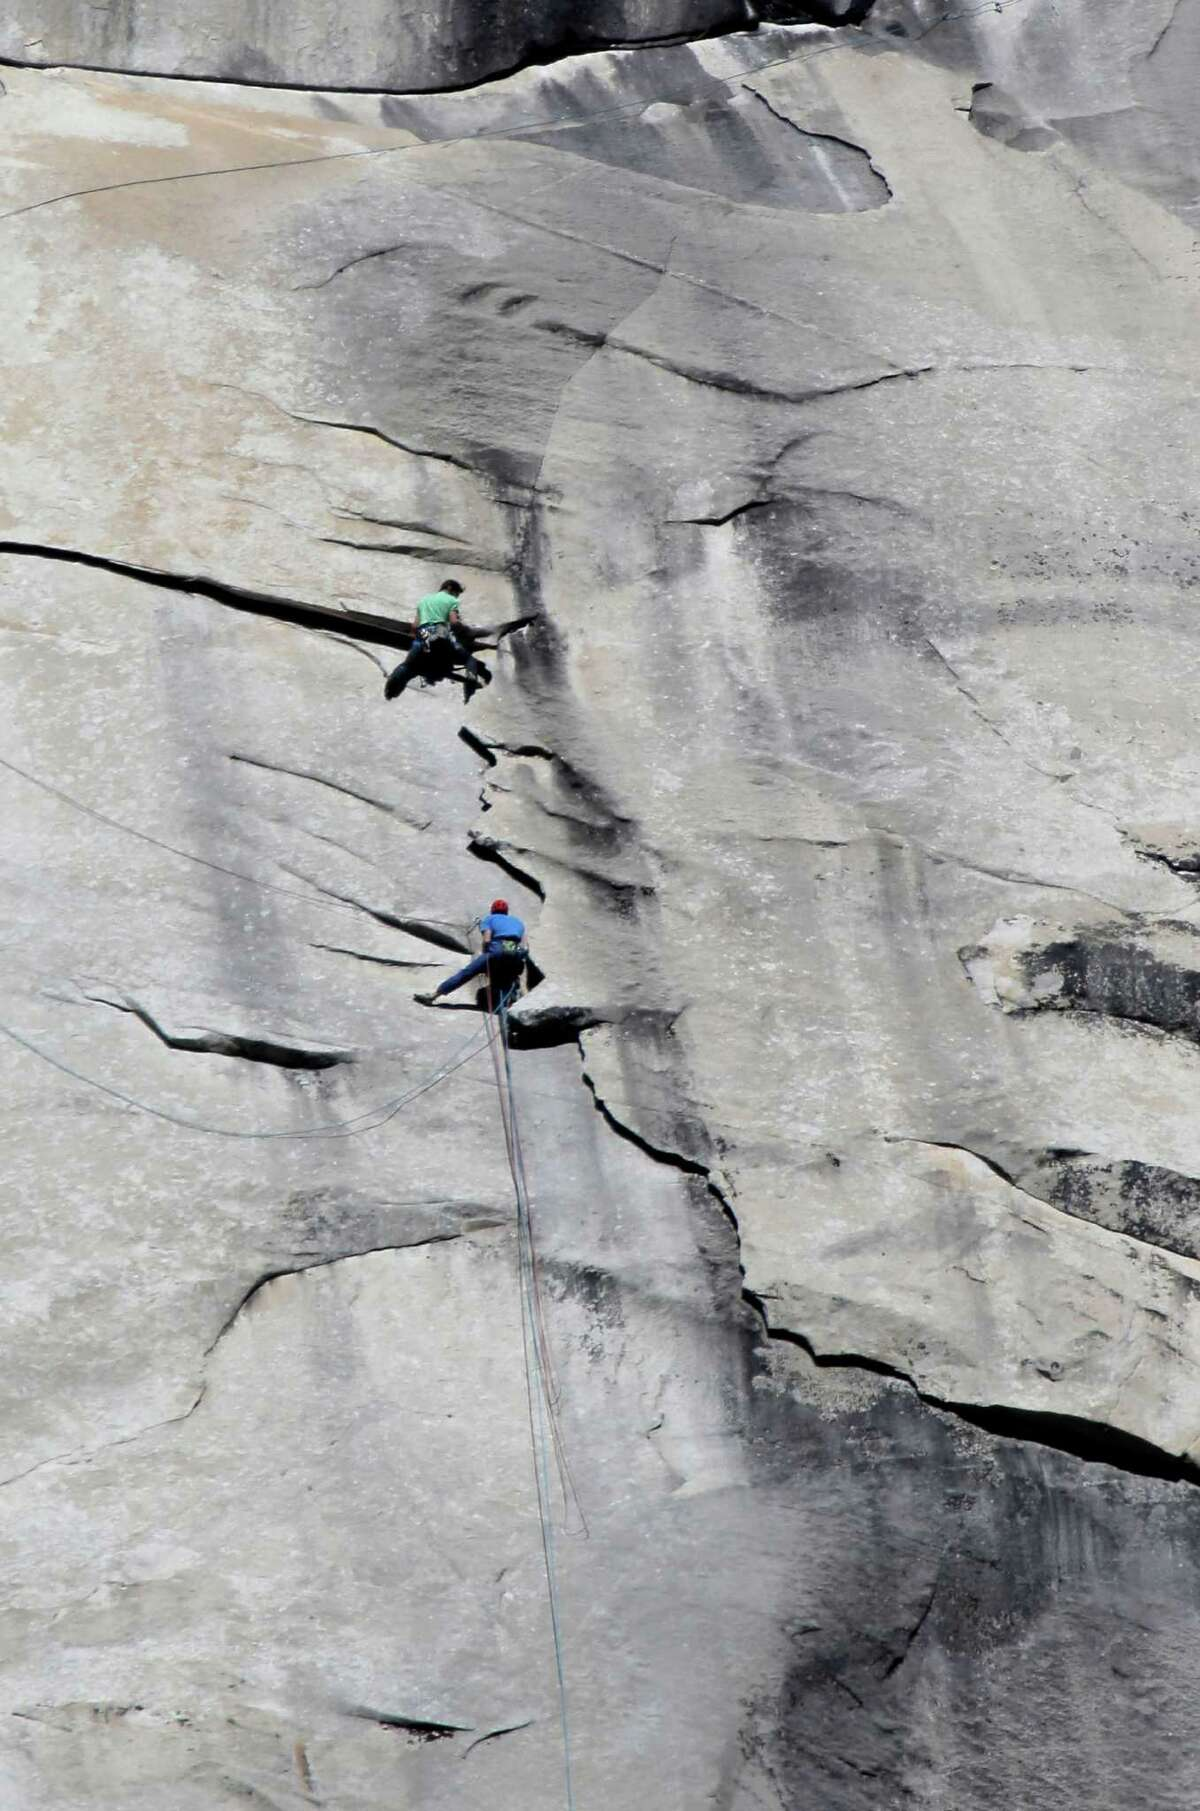 Tommy Caldwell (bottom) and Kevin Jorgeson reach pitch 29 on the face of El Capitan during their record-setting free climb in in Yosemite National Park.